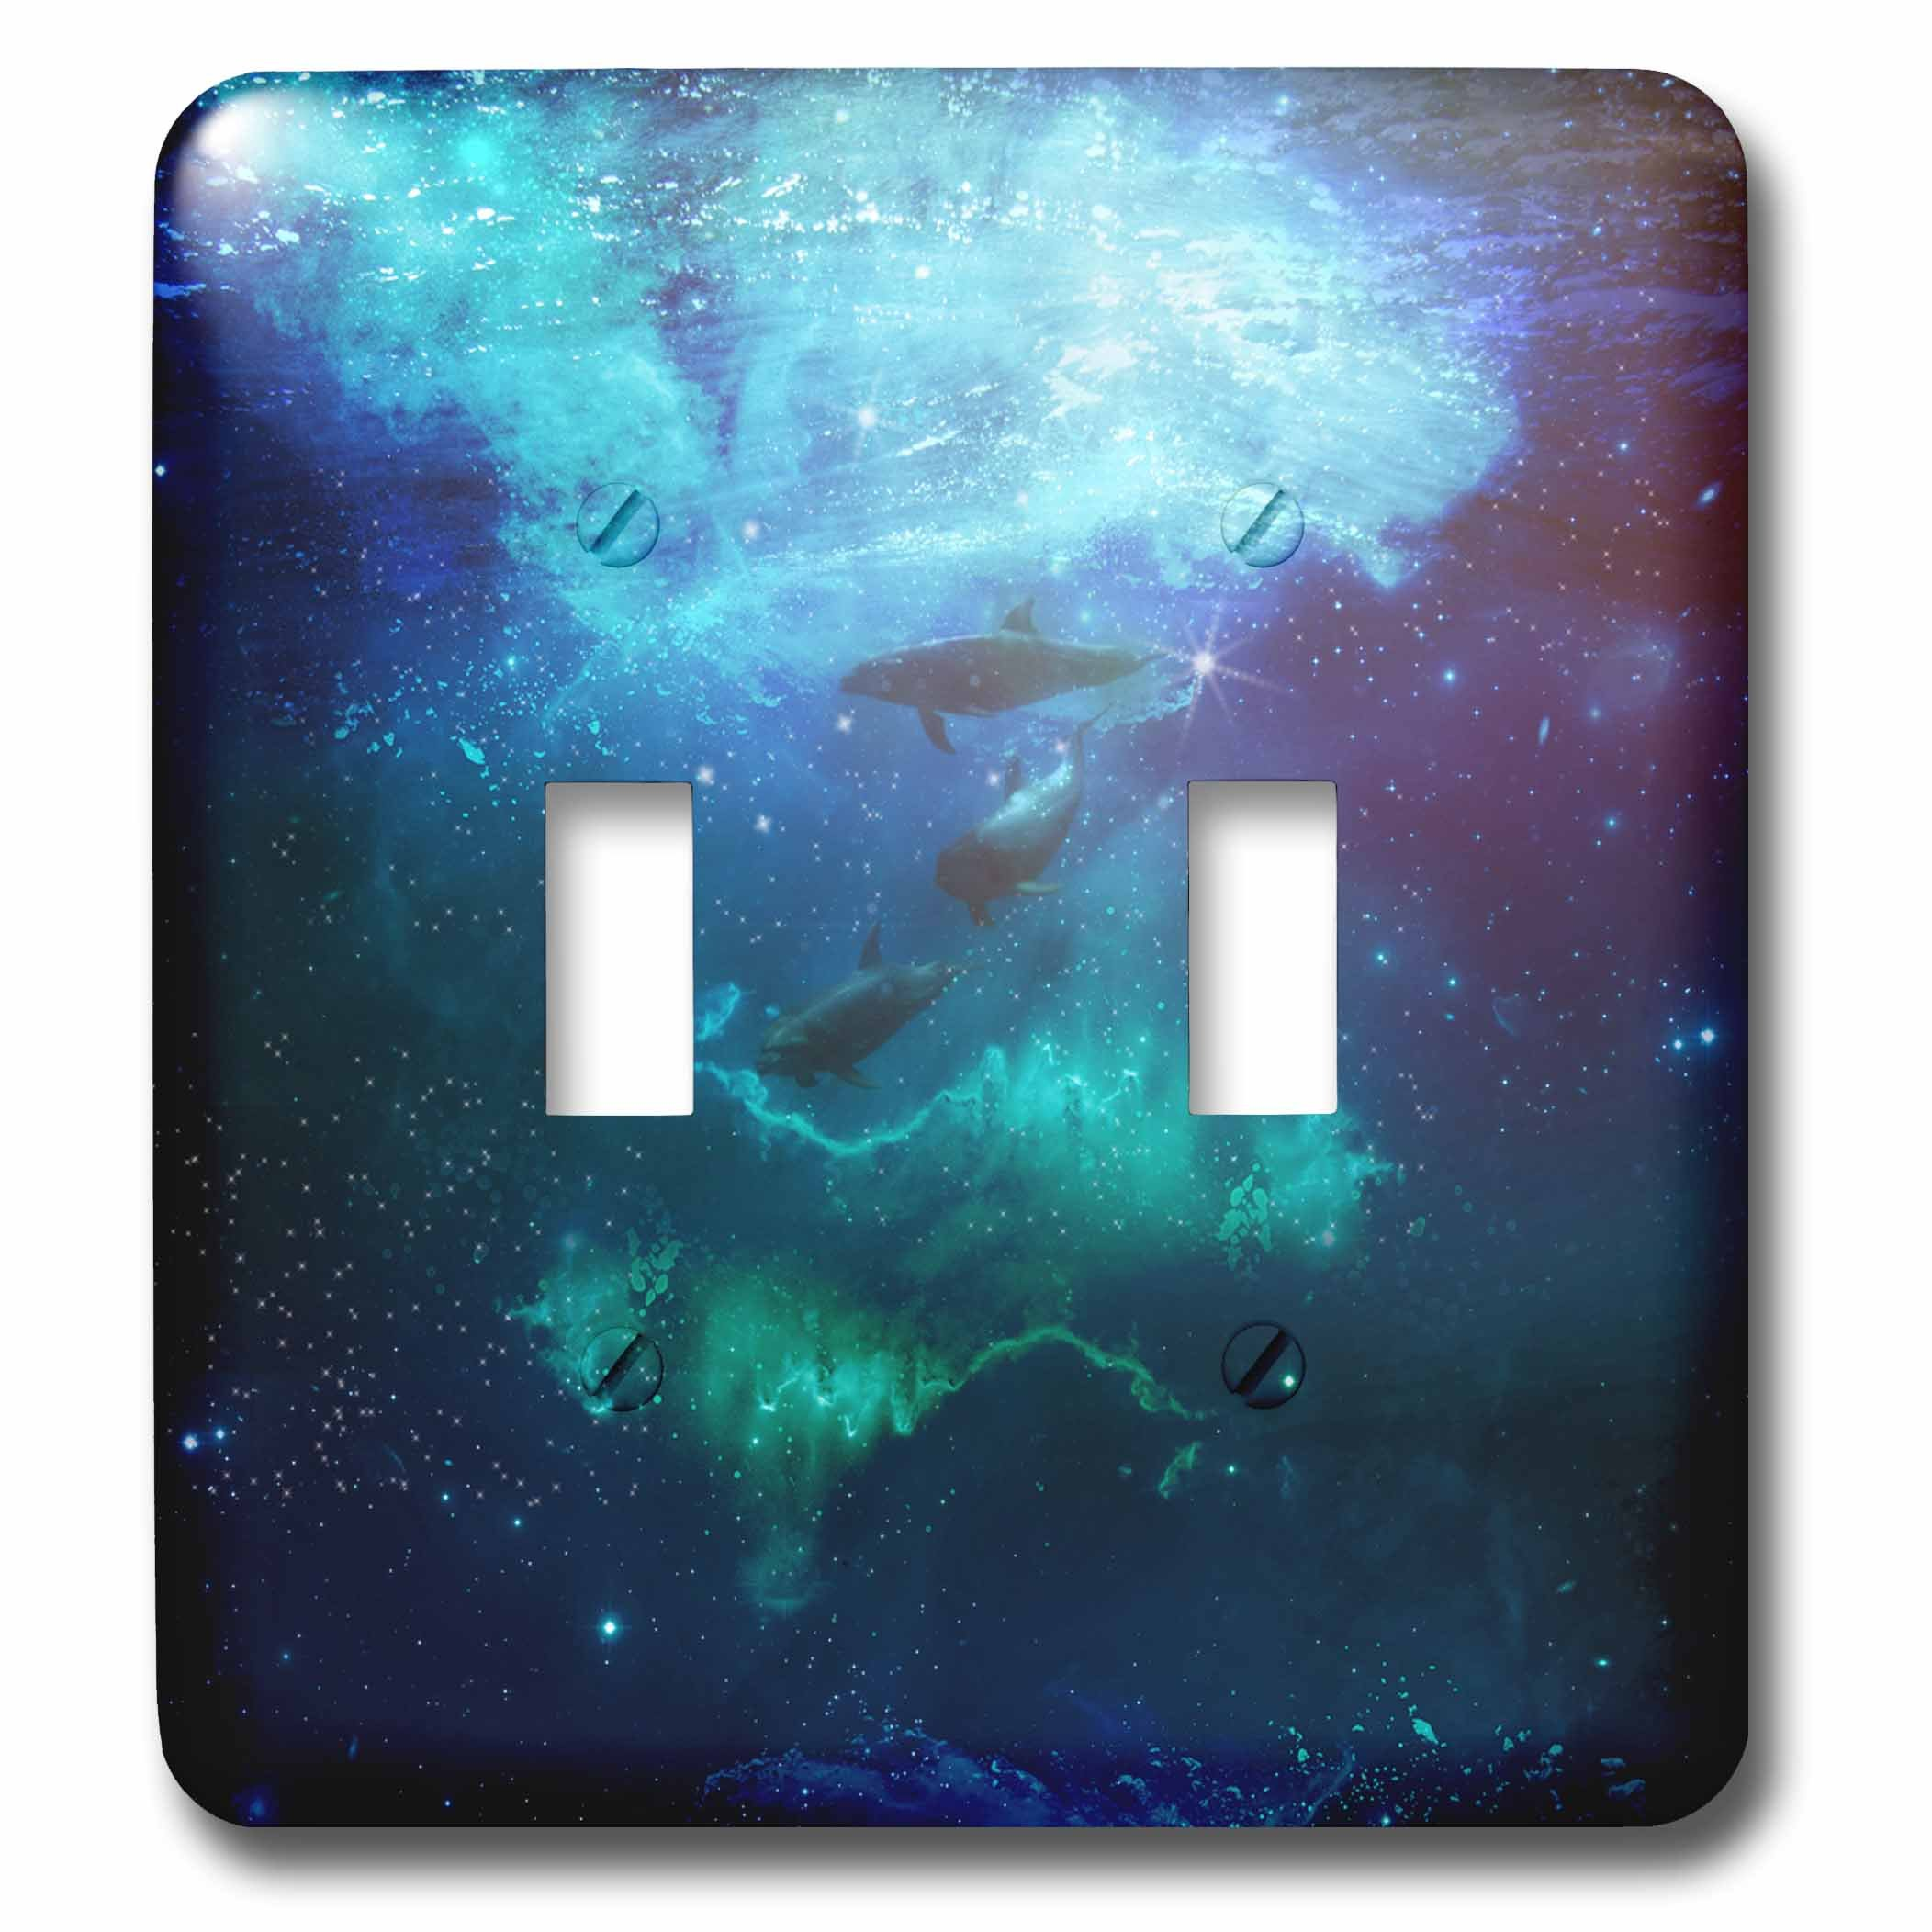 3dRose Andrea Haase Animals Illustration - Blue Underwater Dolphin Mixed Media Illustration - Light Switch Covers - double toggle switch (lsp_271193_2)